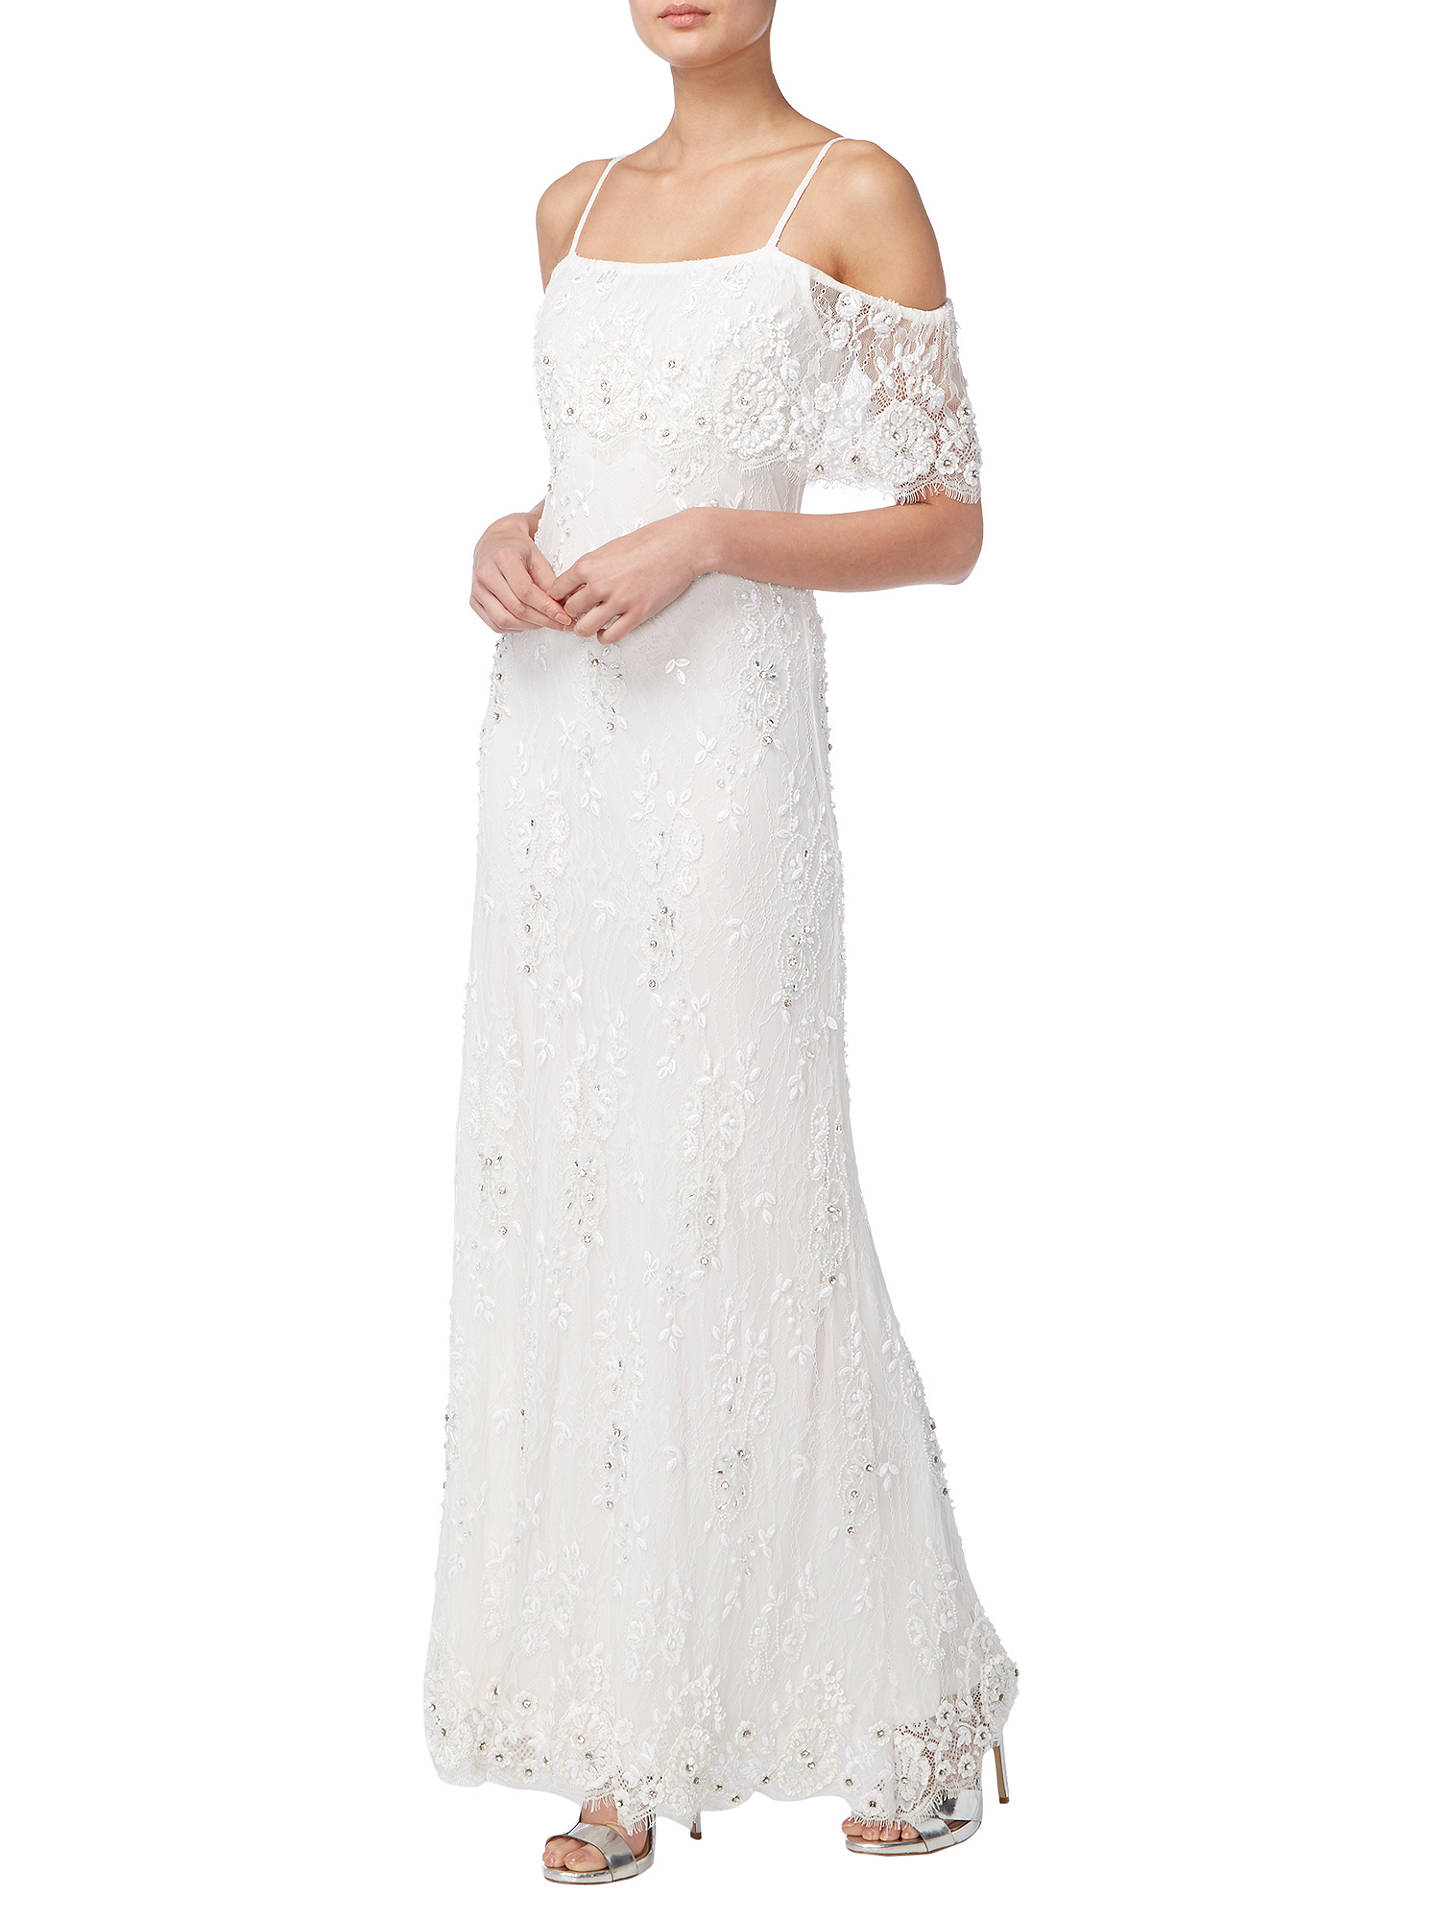 BuyRaishma Lace Beaded Bridal Gown, Ivory, 8 Online at johnlewis.com